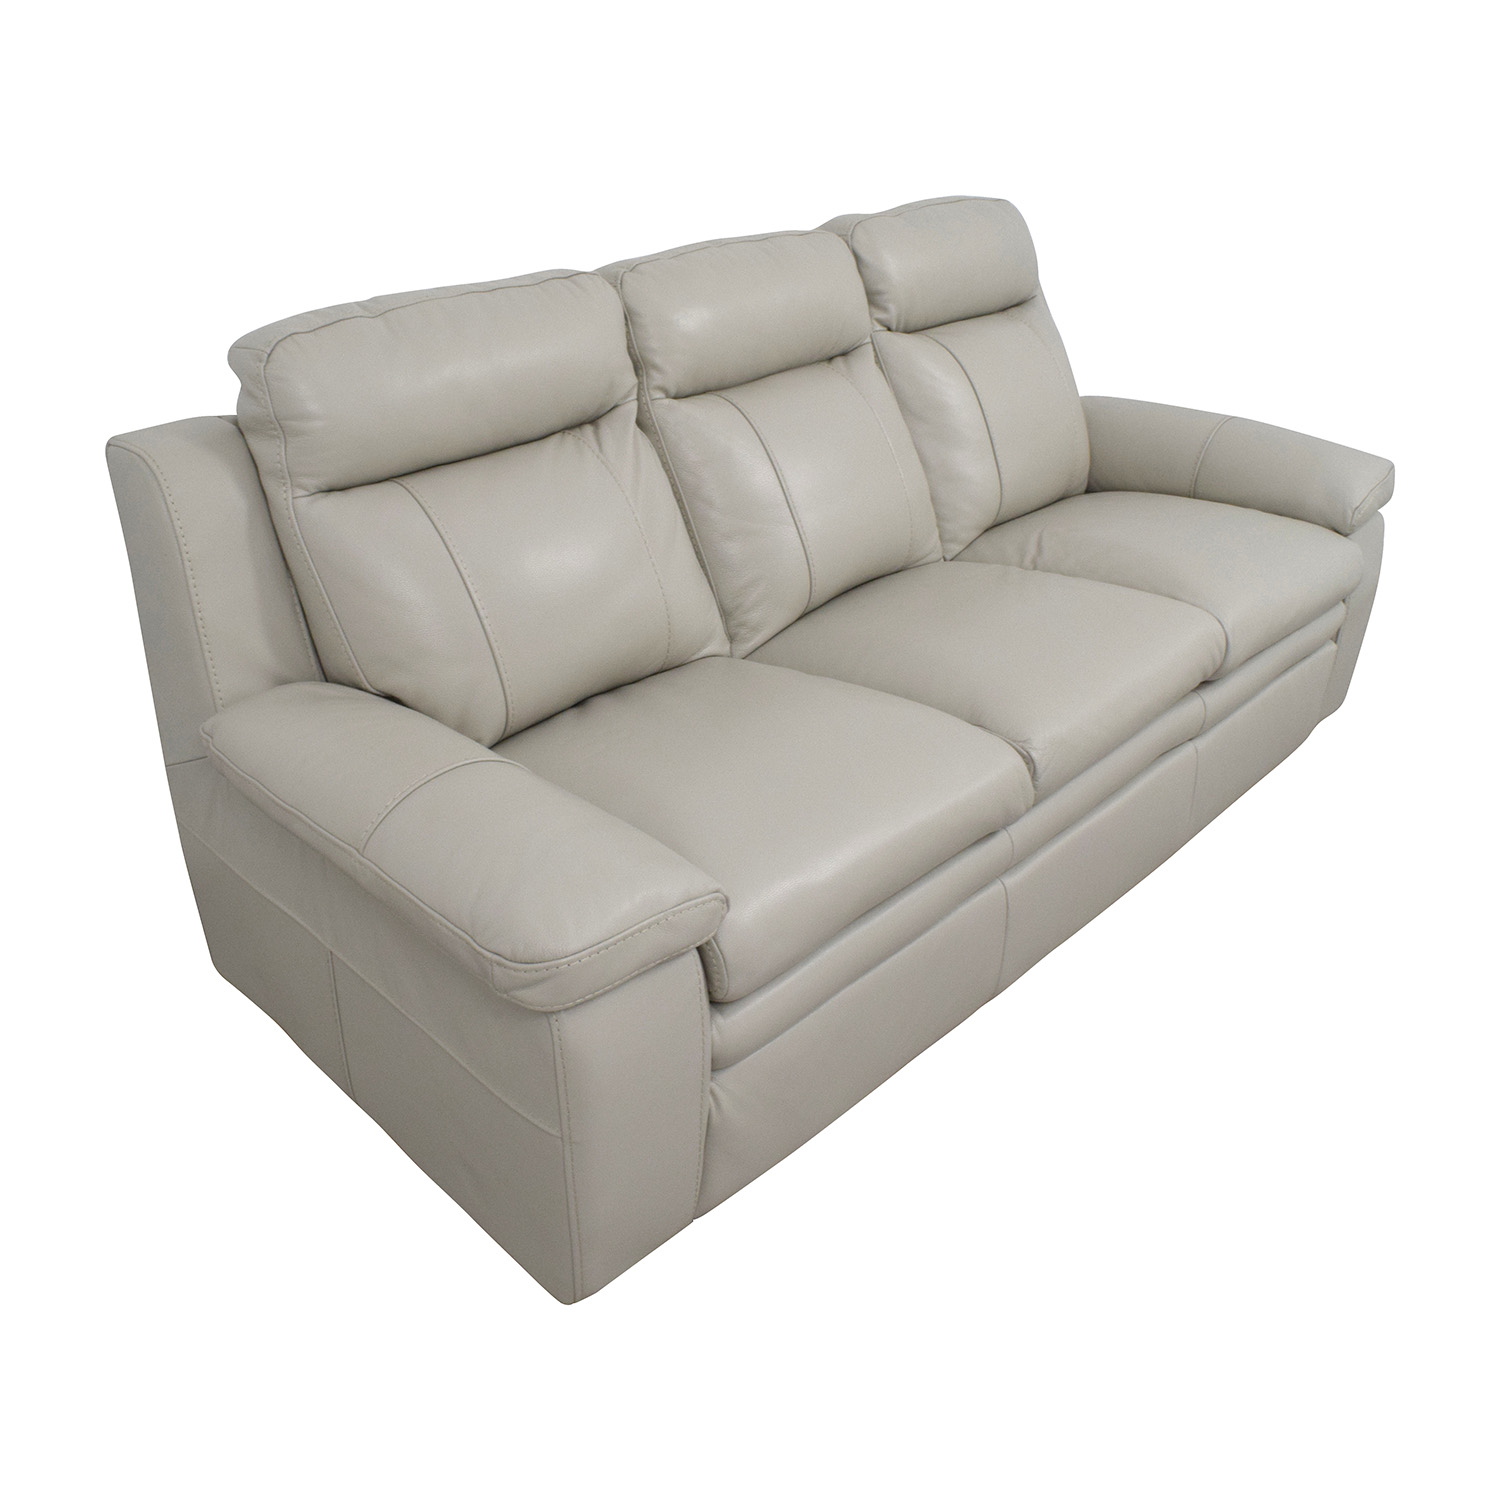 67 Off Macy S Macy S Zane White Leather Sofa Sofas